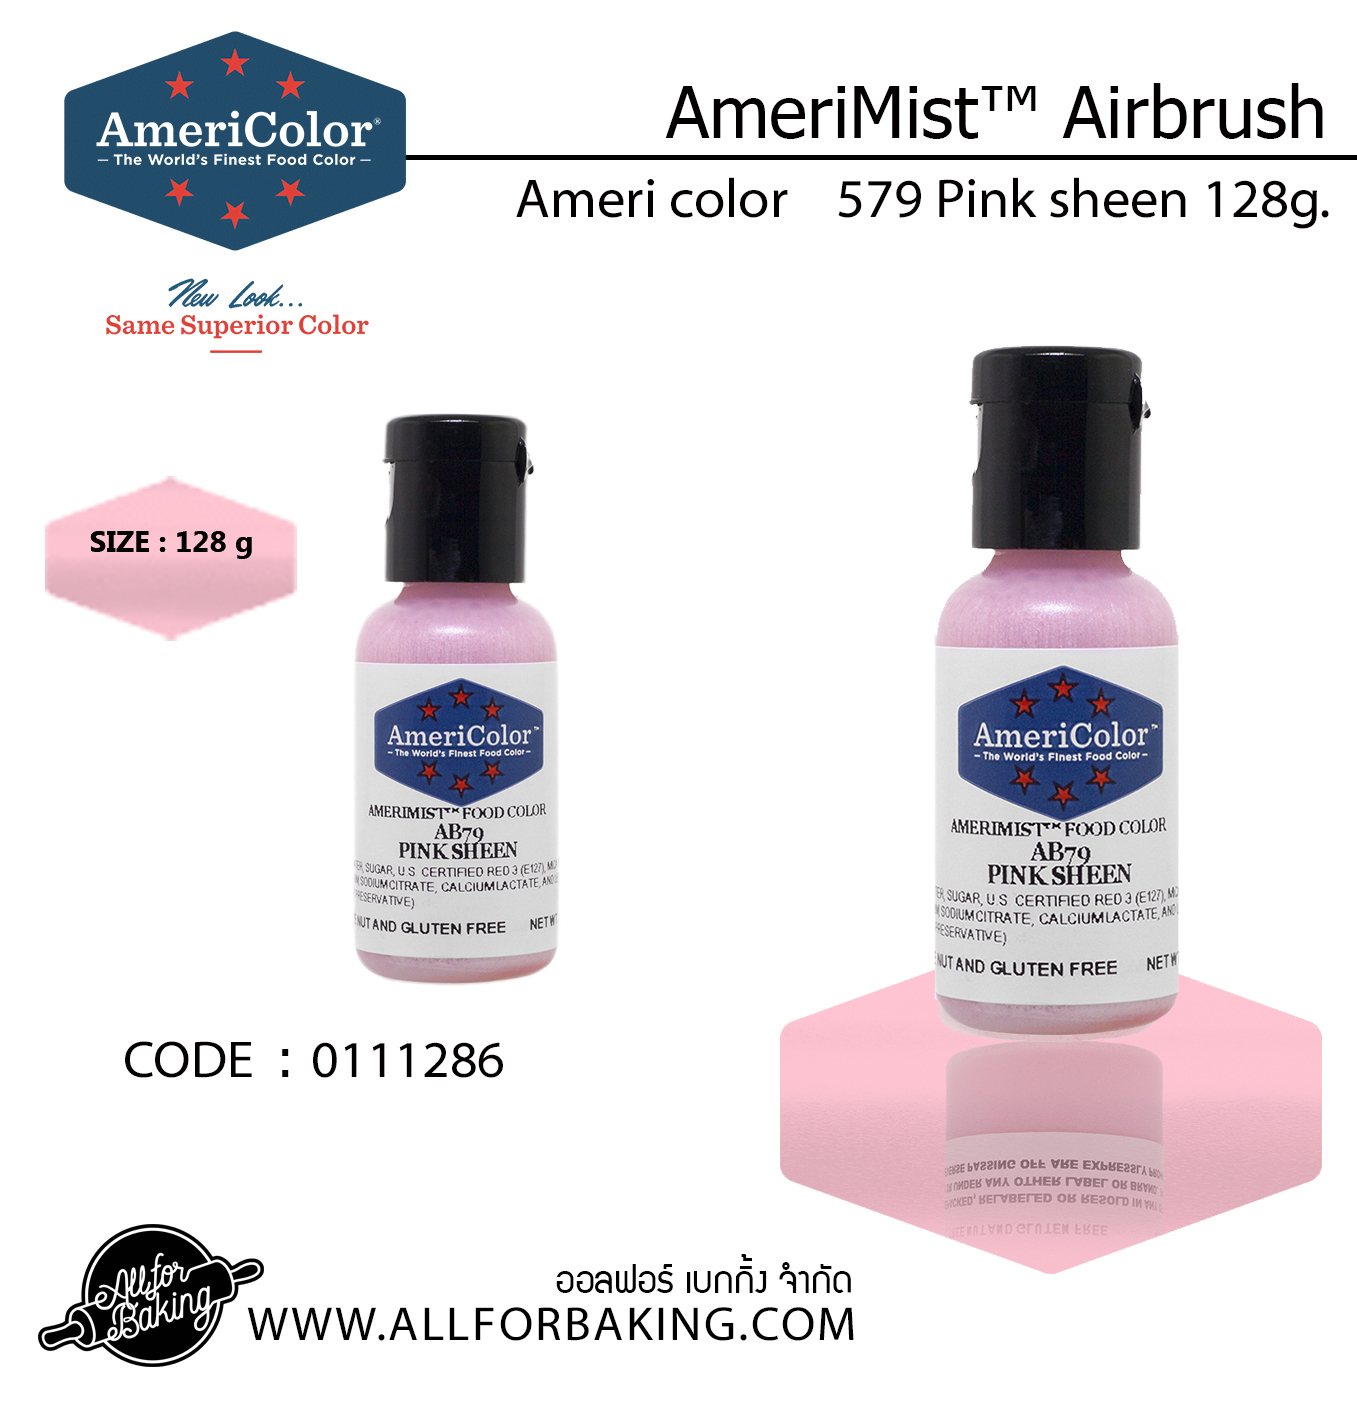 Ameri color 579 Pink sheen 128g. (128 g)